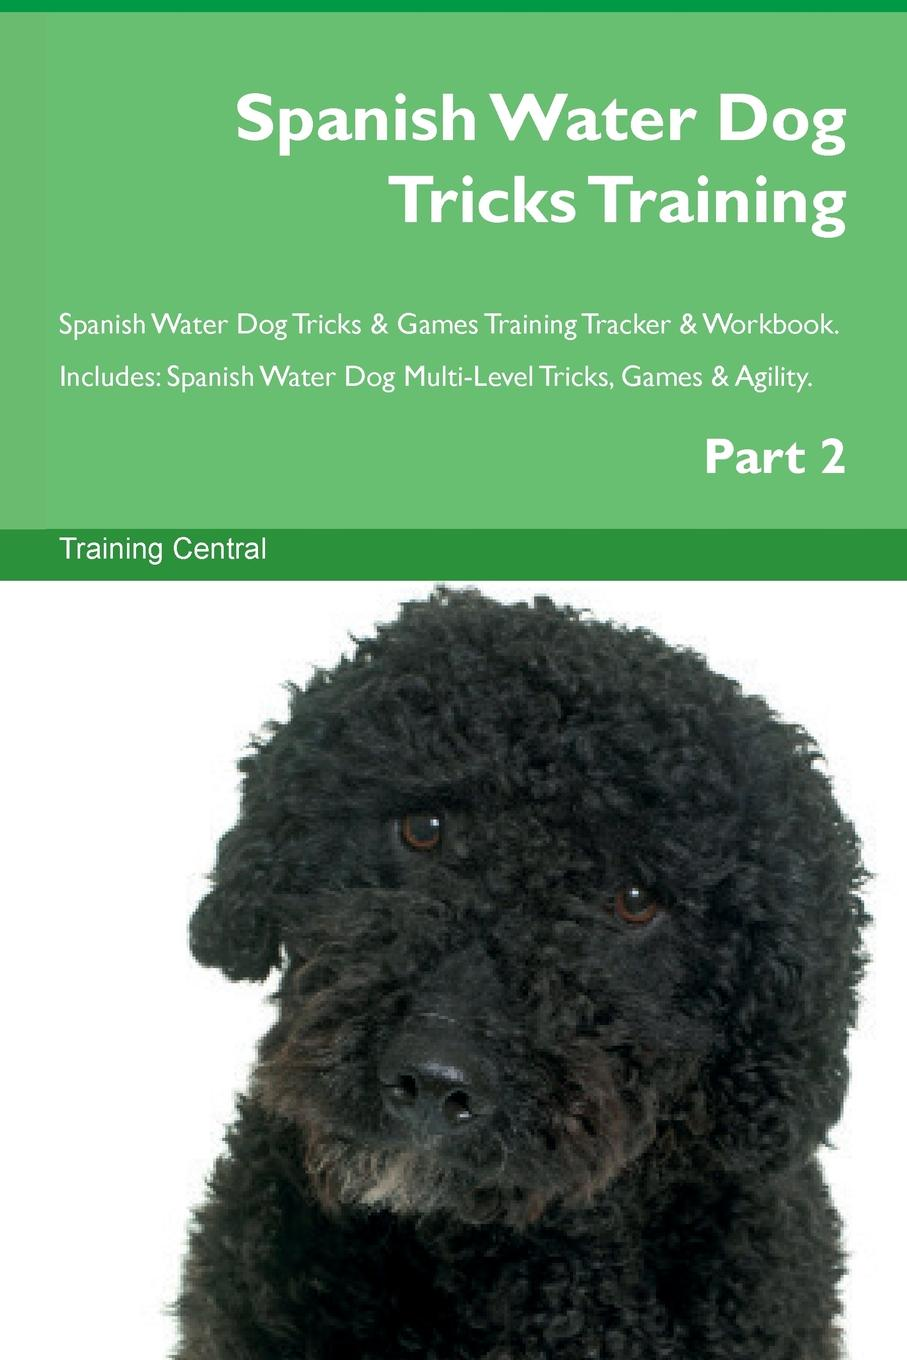 Training Central Spanish Water Dog Tricks Training Spanish Water Dog Tricks & Games Training Tracker & Workbook. Includes. Spanish Water Dog Multi-Level Tricks, Games & Agility. Part 2